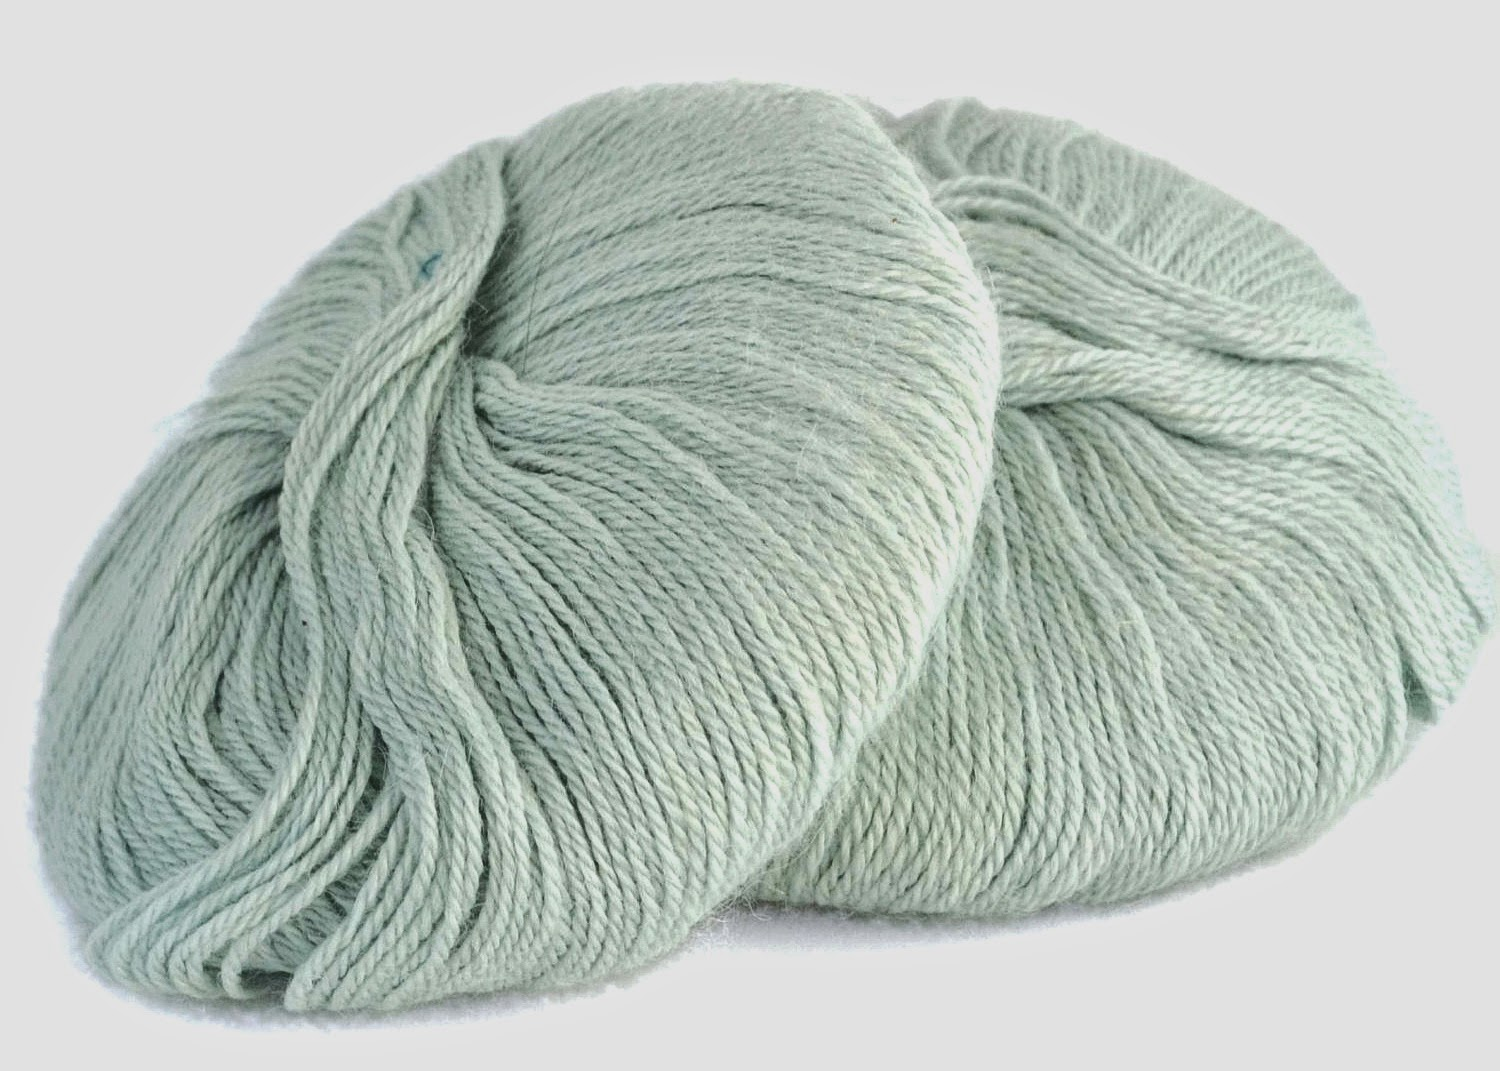 https://www.etsy.com/listing/169266425/baby-alpaca-wool-mint-green-light-acqua?ref=shop_home_active_8